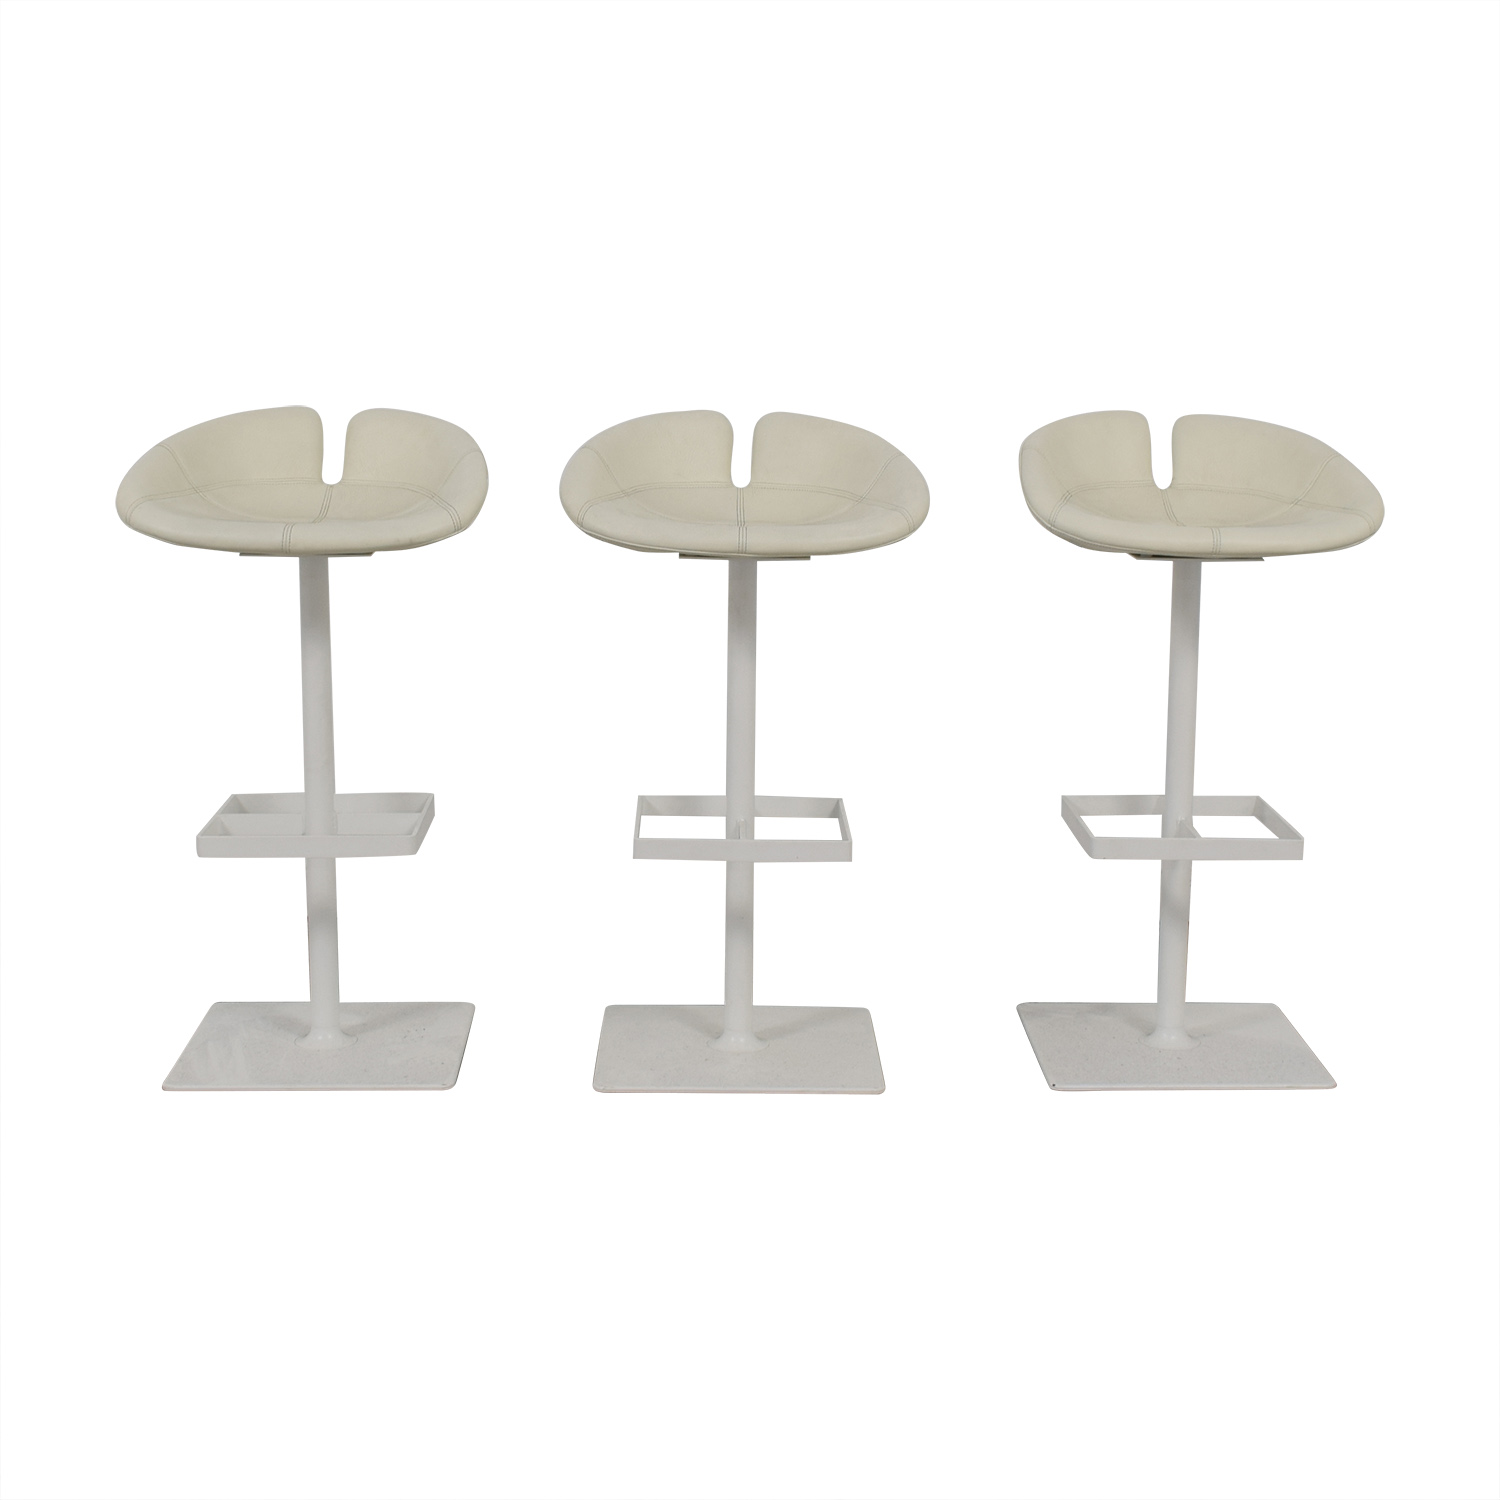 Super 82 Off Moroso Moroso Fjord White Leather Barstools Chairs Alphanode Cool Chair Designs And Ideas Alphanodeonline